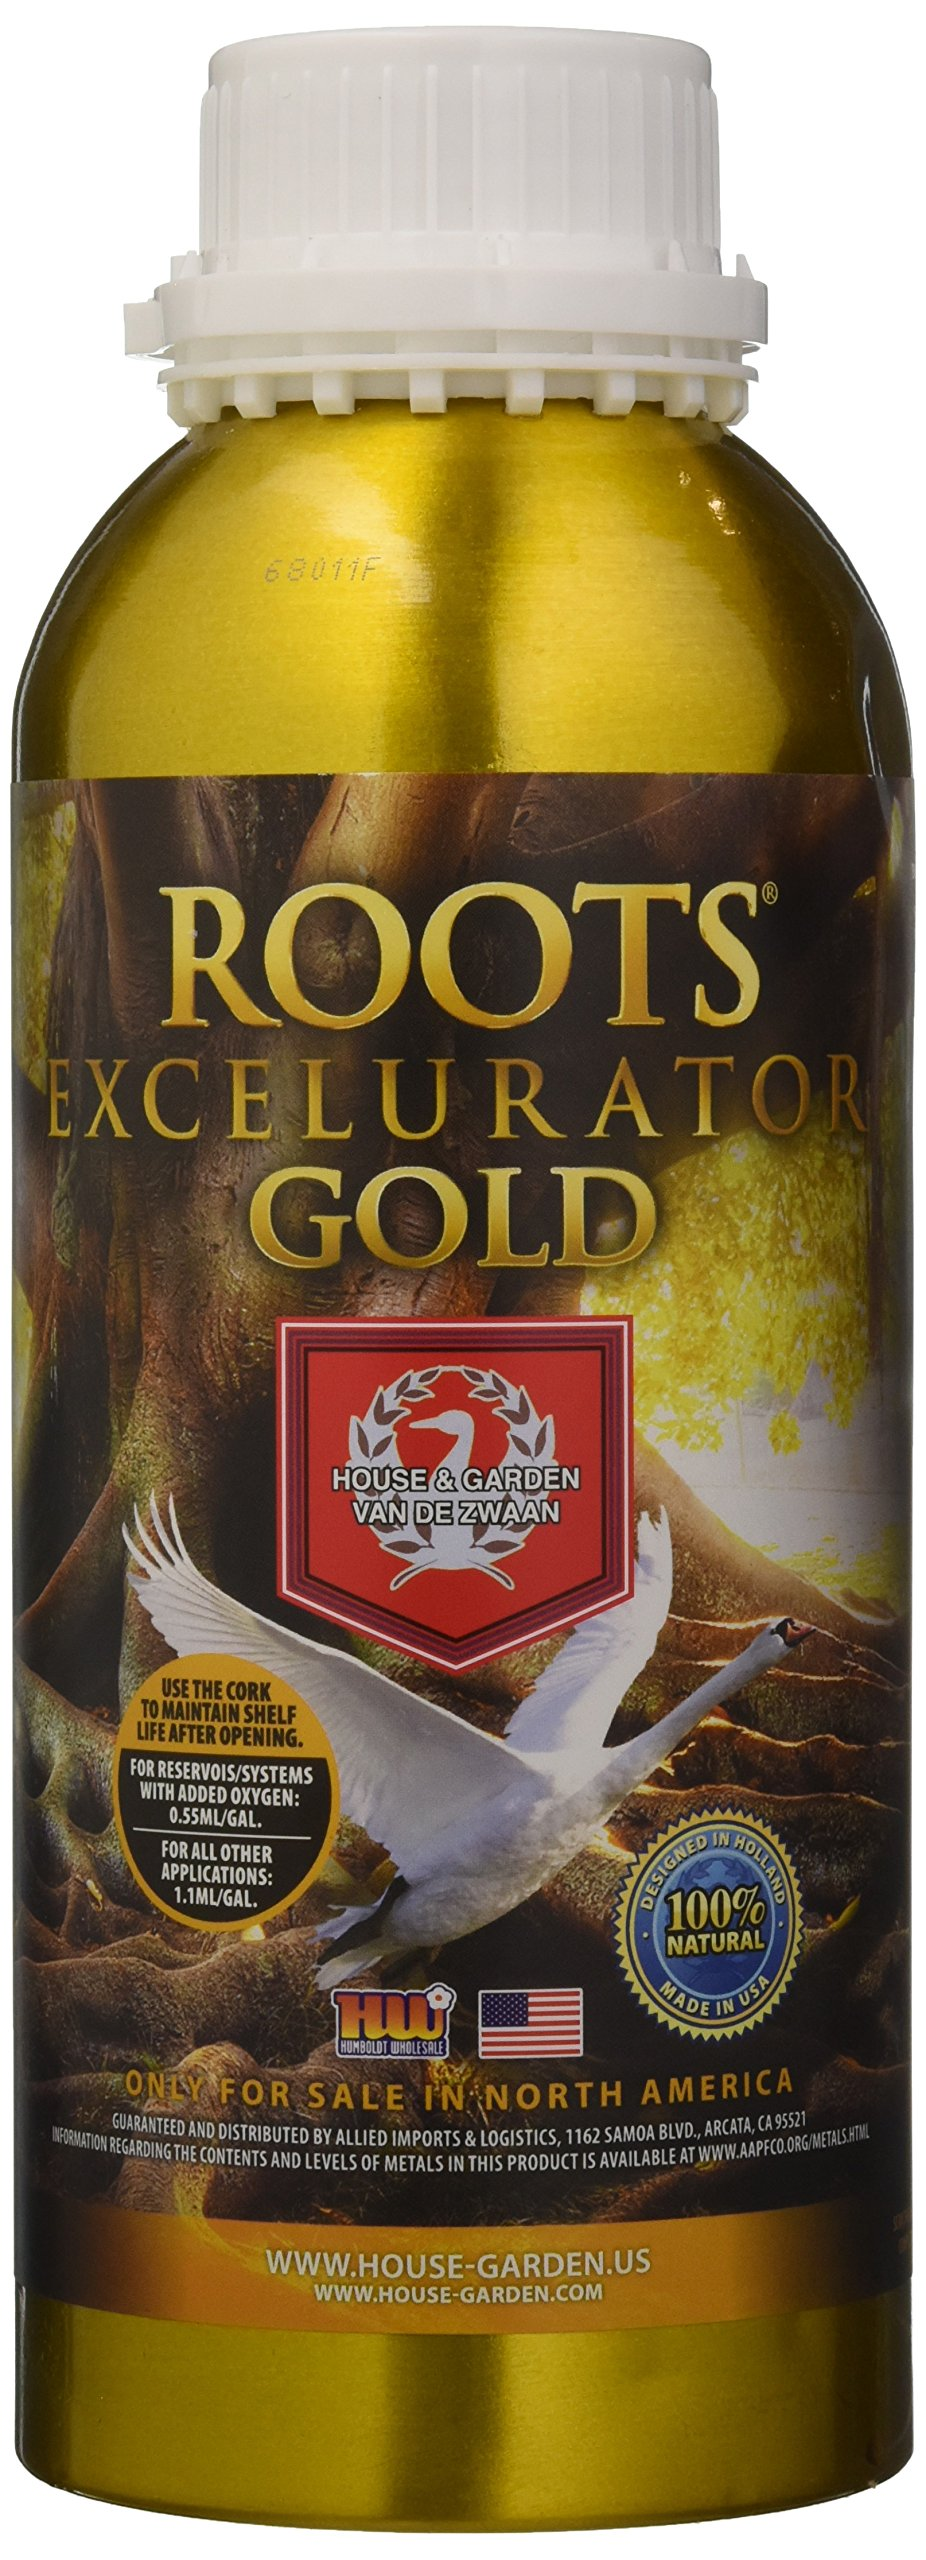 House and Garden ''Gold'' Root Excelurator 1 Liter